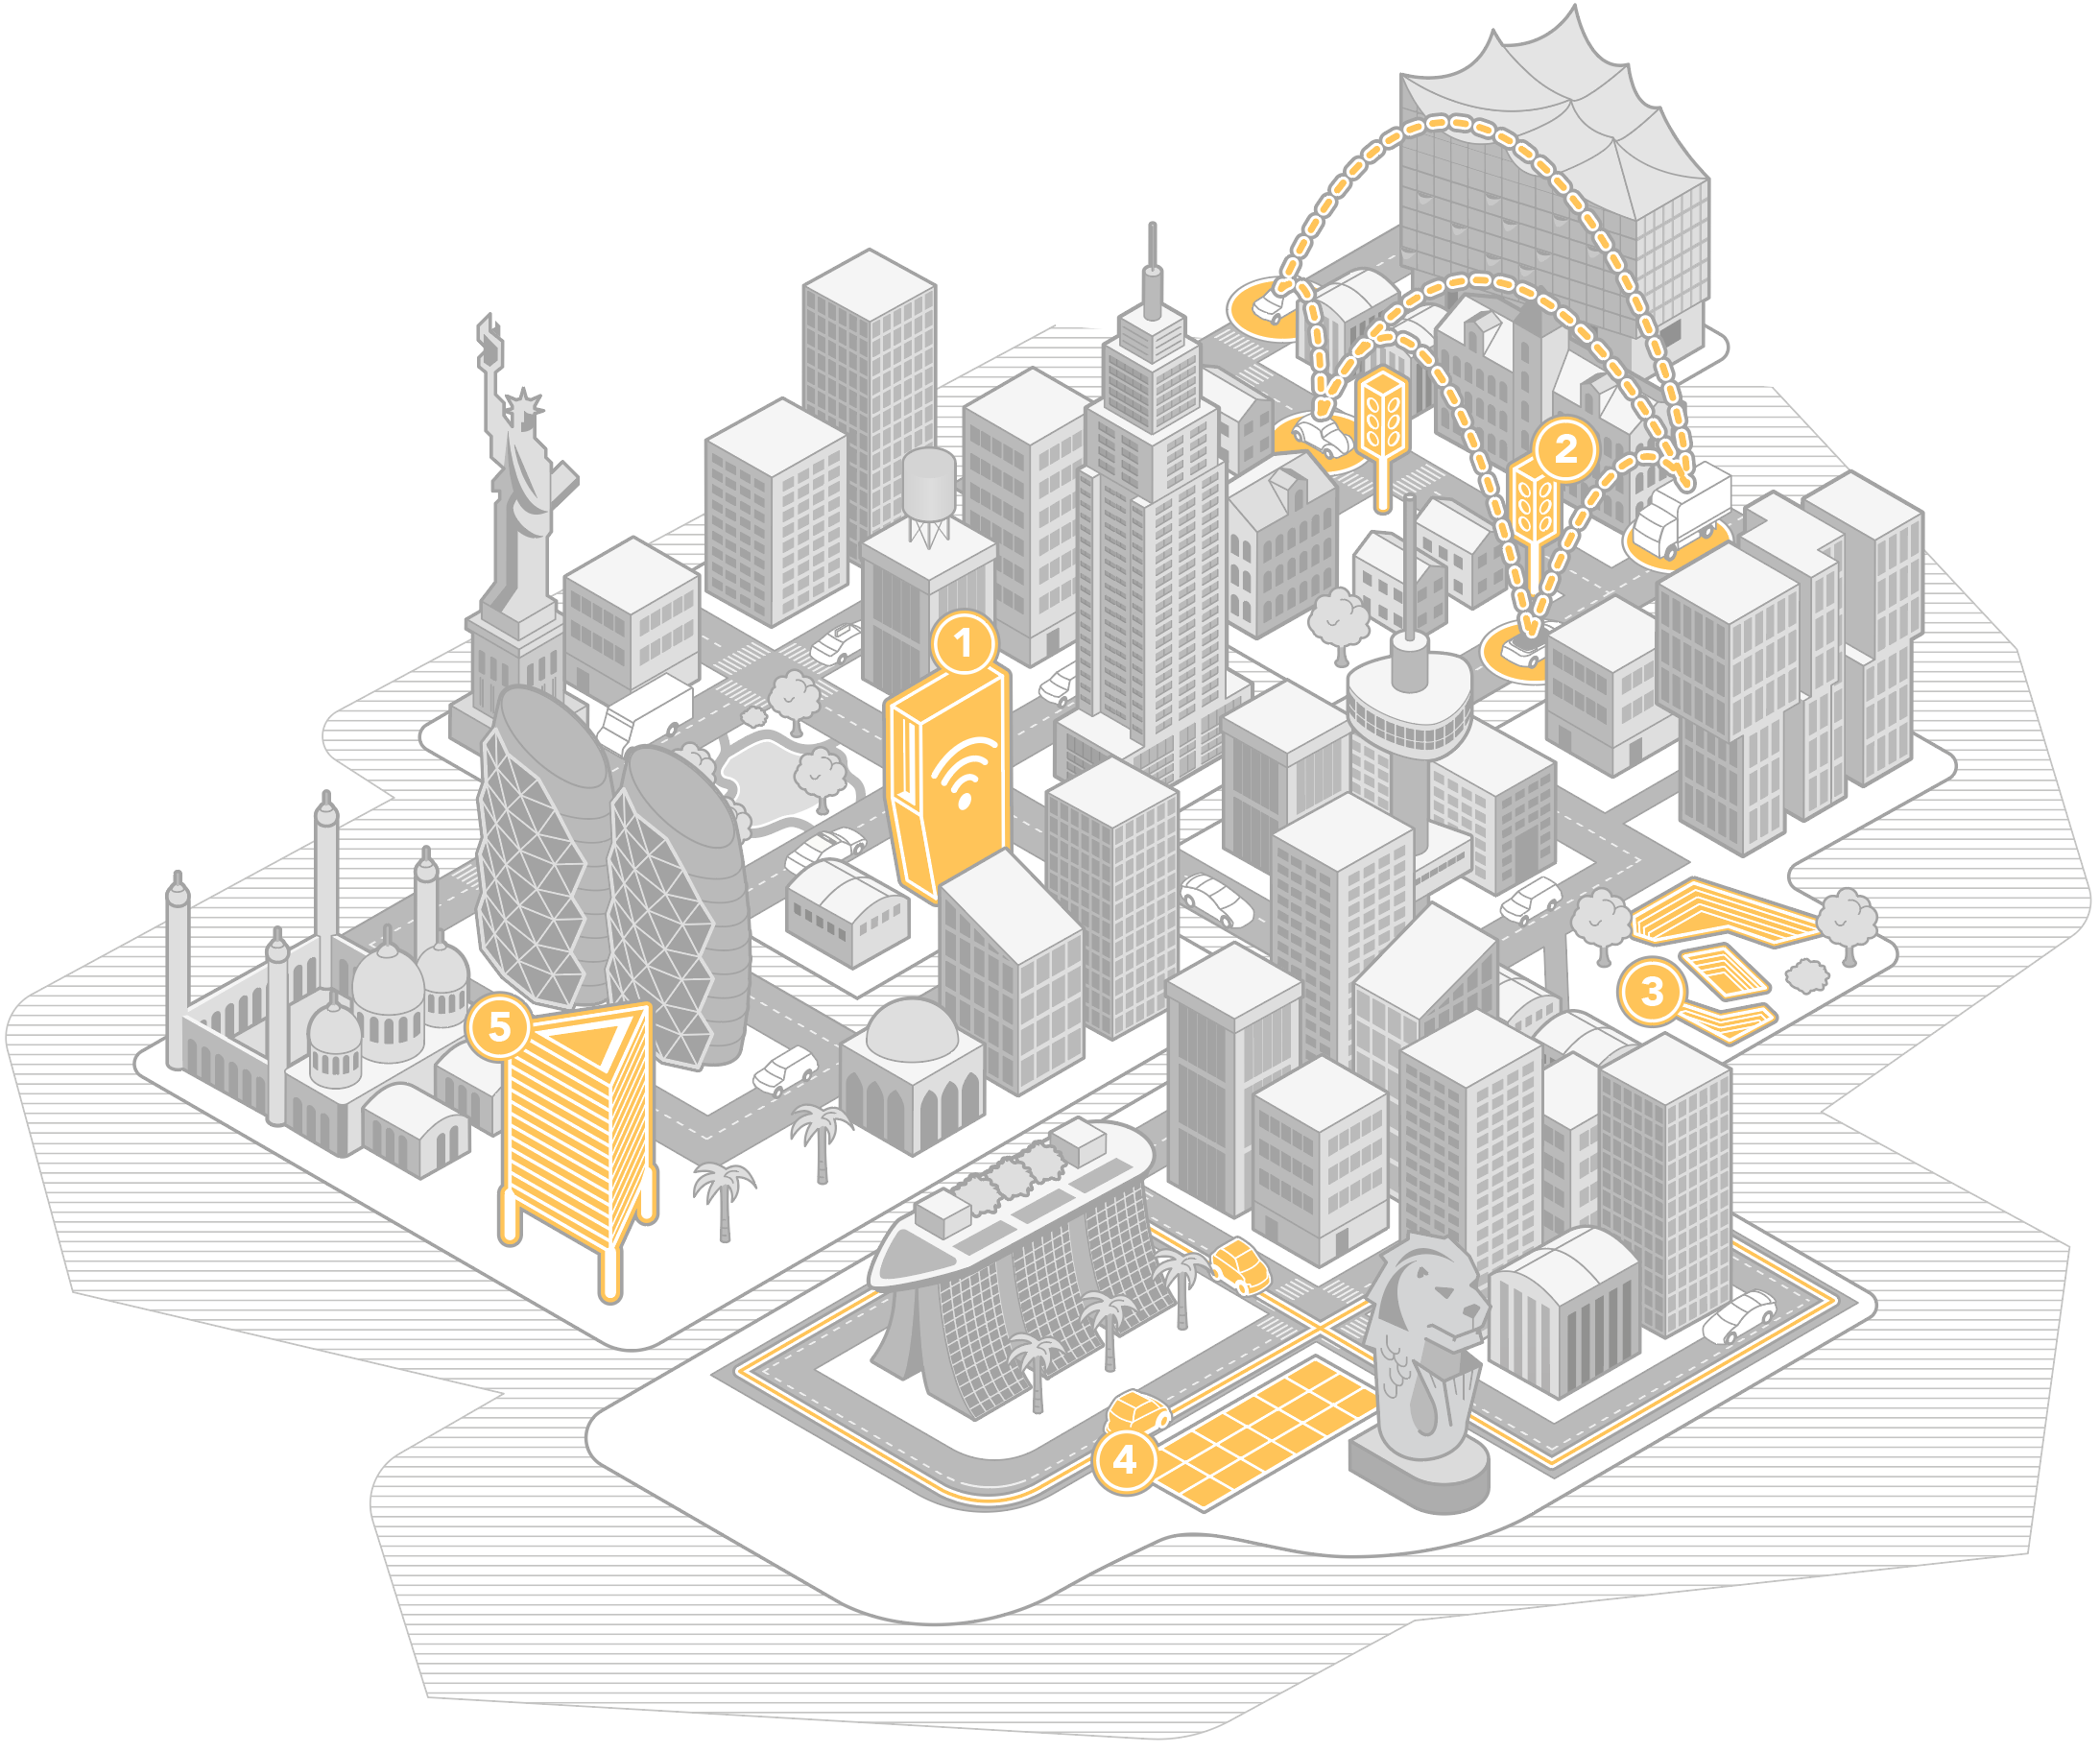 Future city, made up of modern cities from all over the world